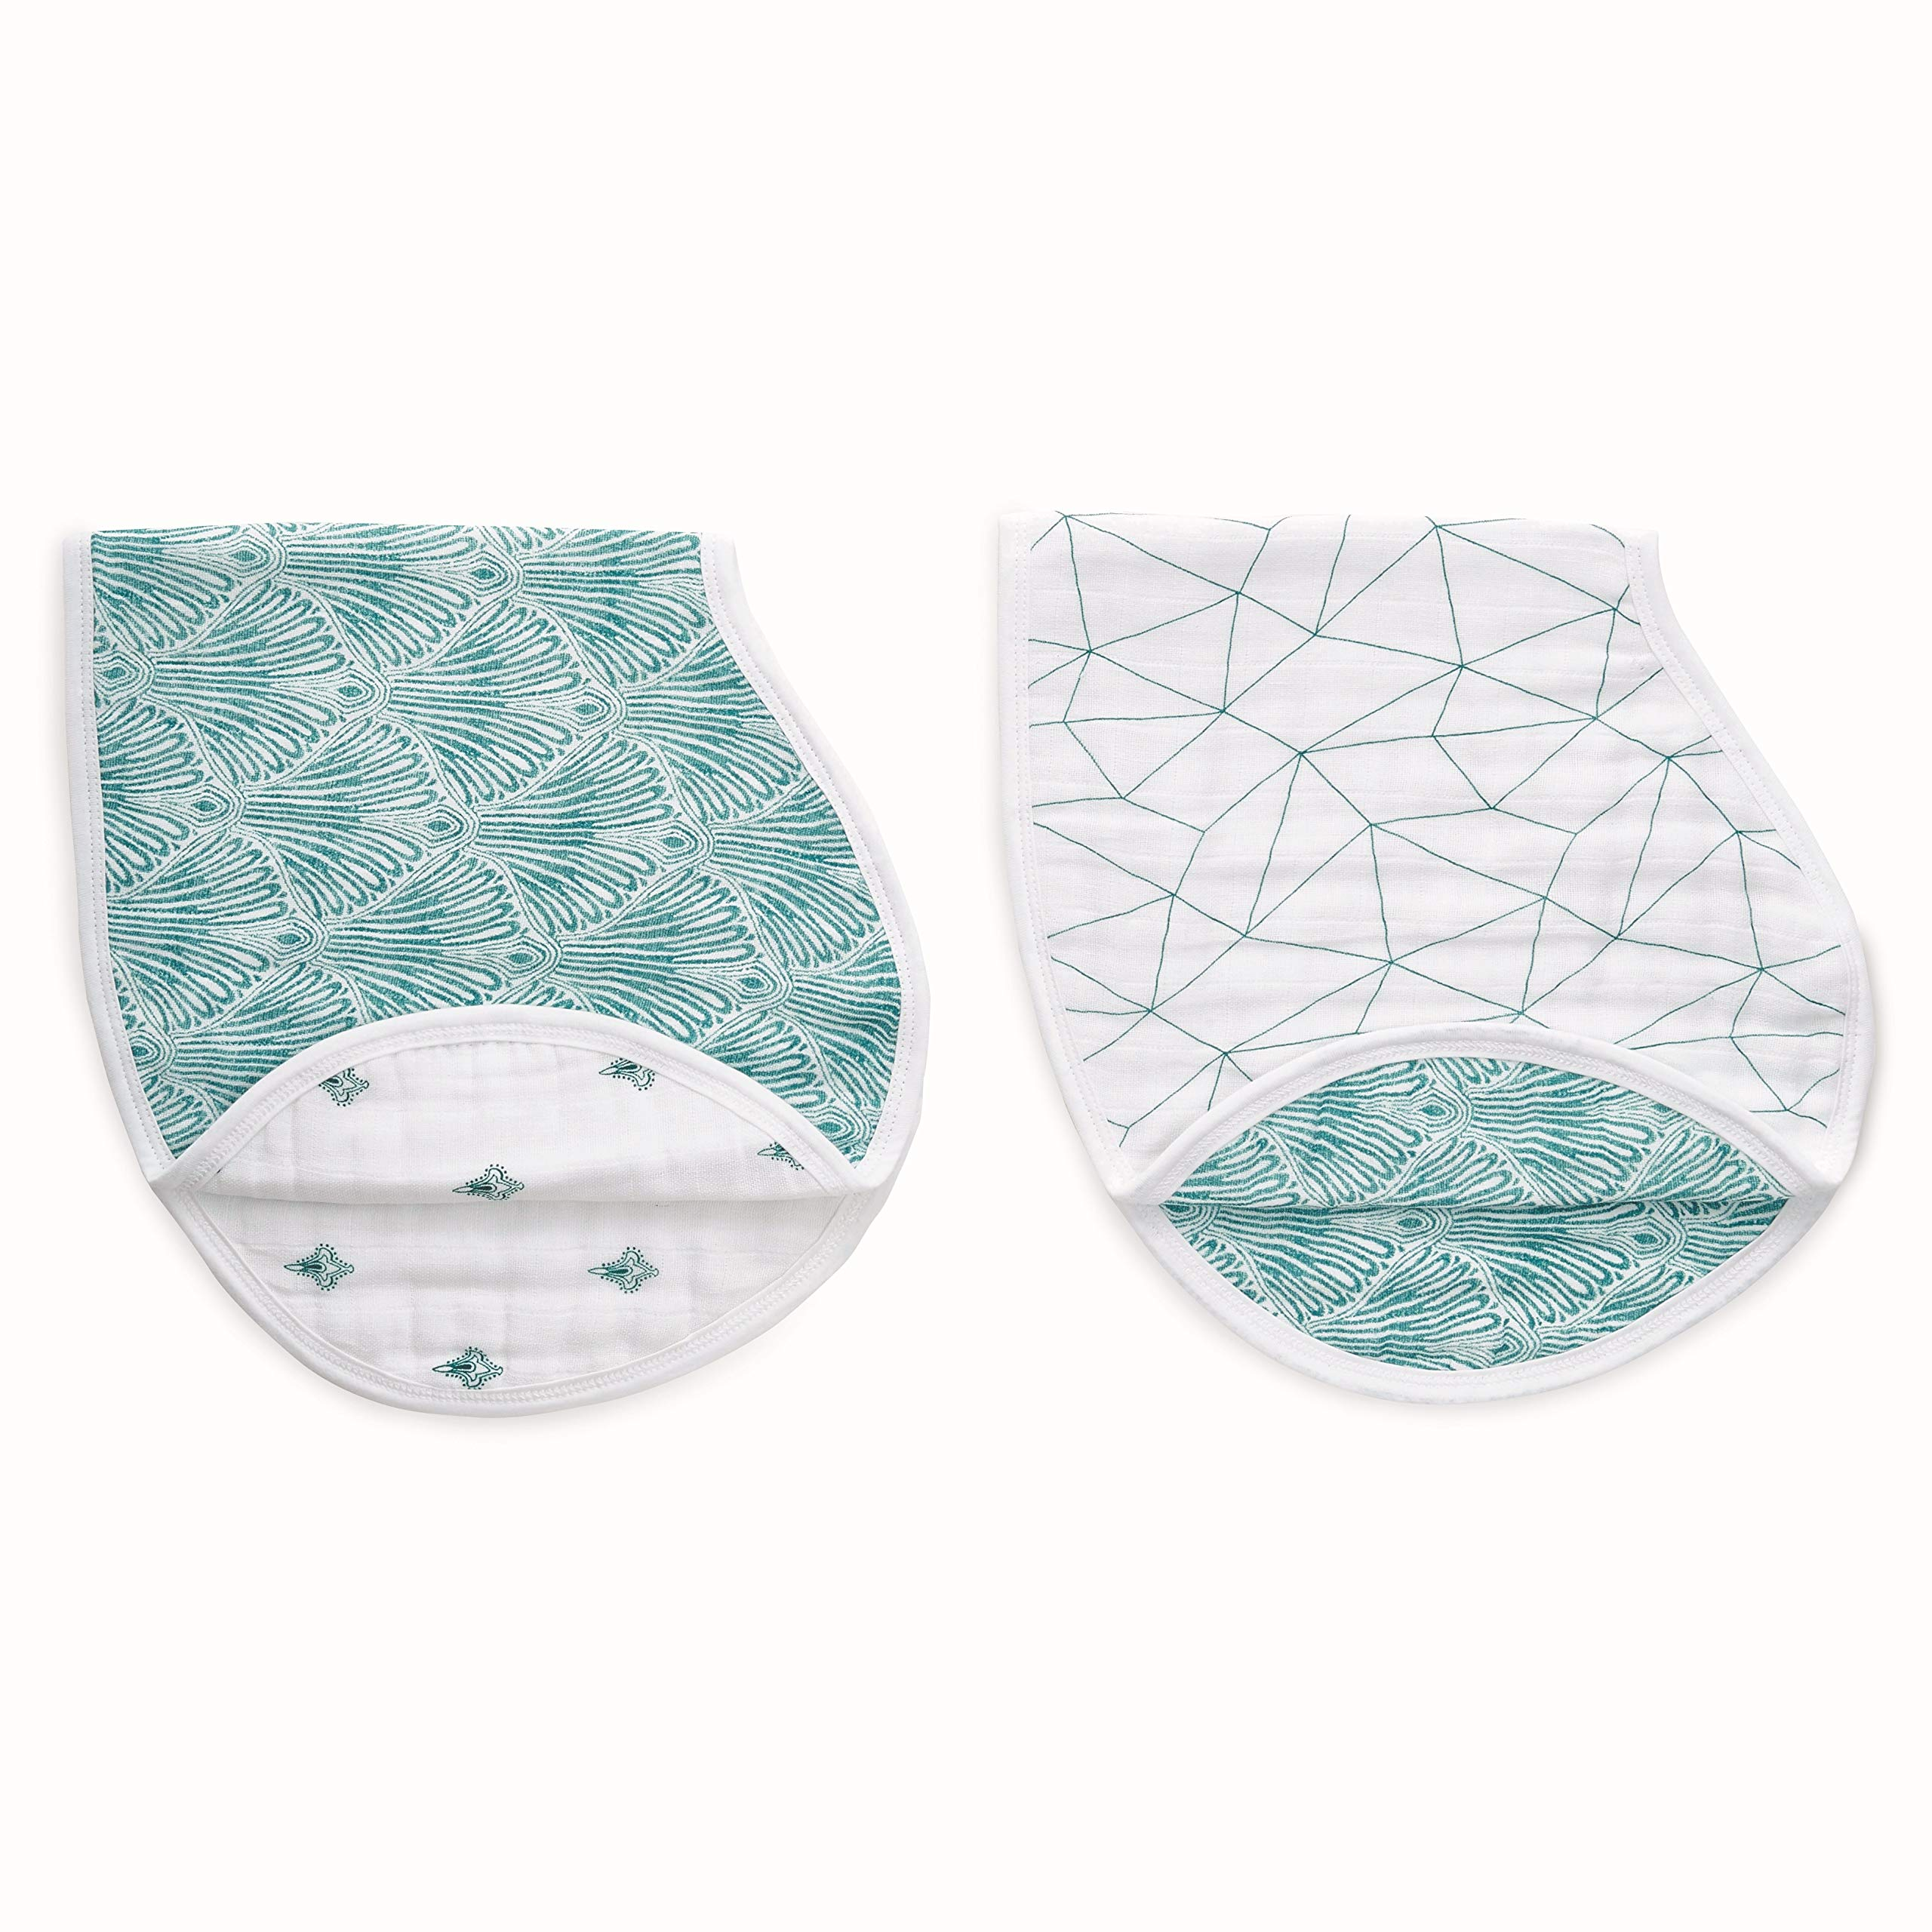 aden + anais Burpy Baby Bib, 100% Cotton Muslin, 4 Layer Multi Use Burping Cloth, Super Soft & Absorbent Burp Rag for Infants, Newborns and Toddlers, 2 Pack, Paisley - Teal